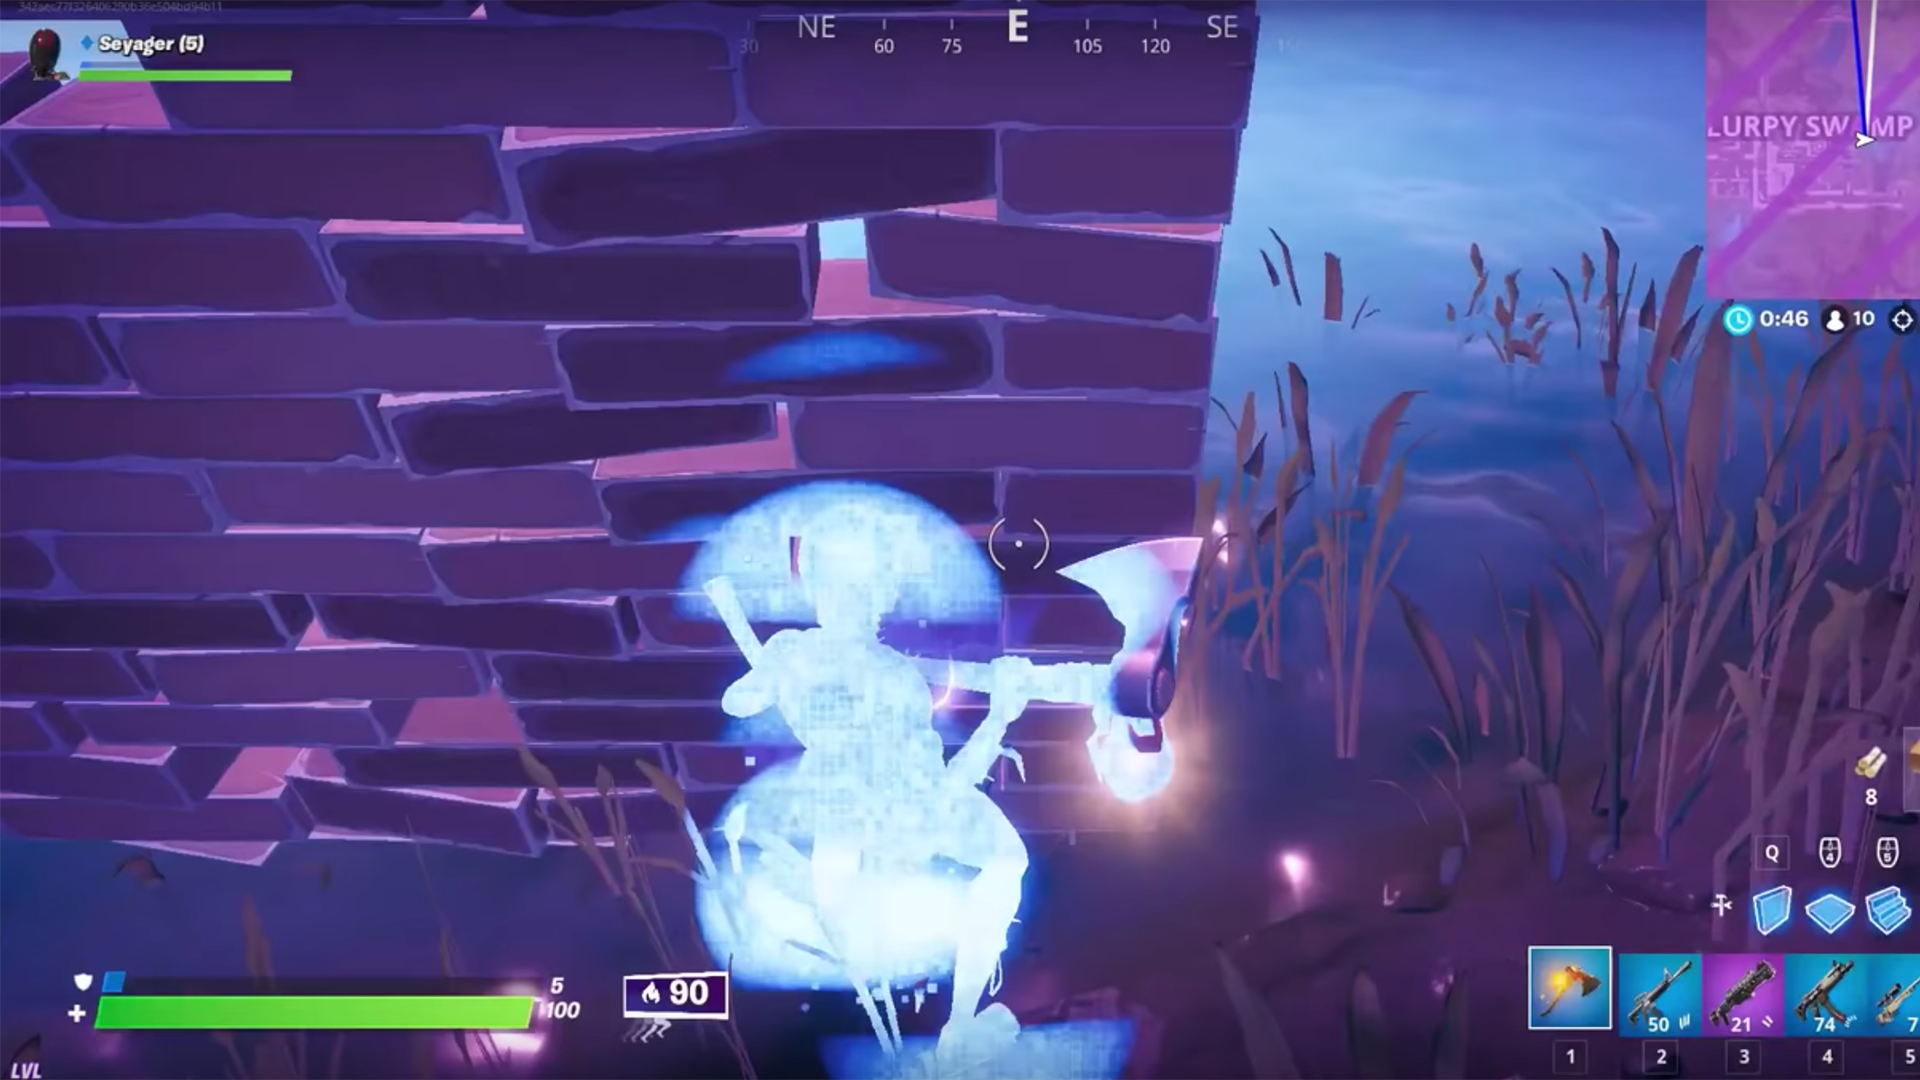 This Fortnite Chapter 2 Glitch Allows You To Constantly Heal